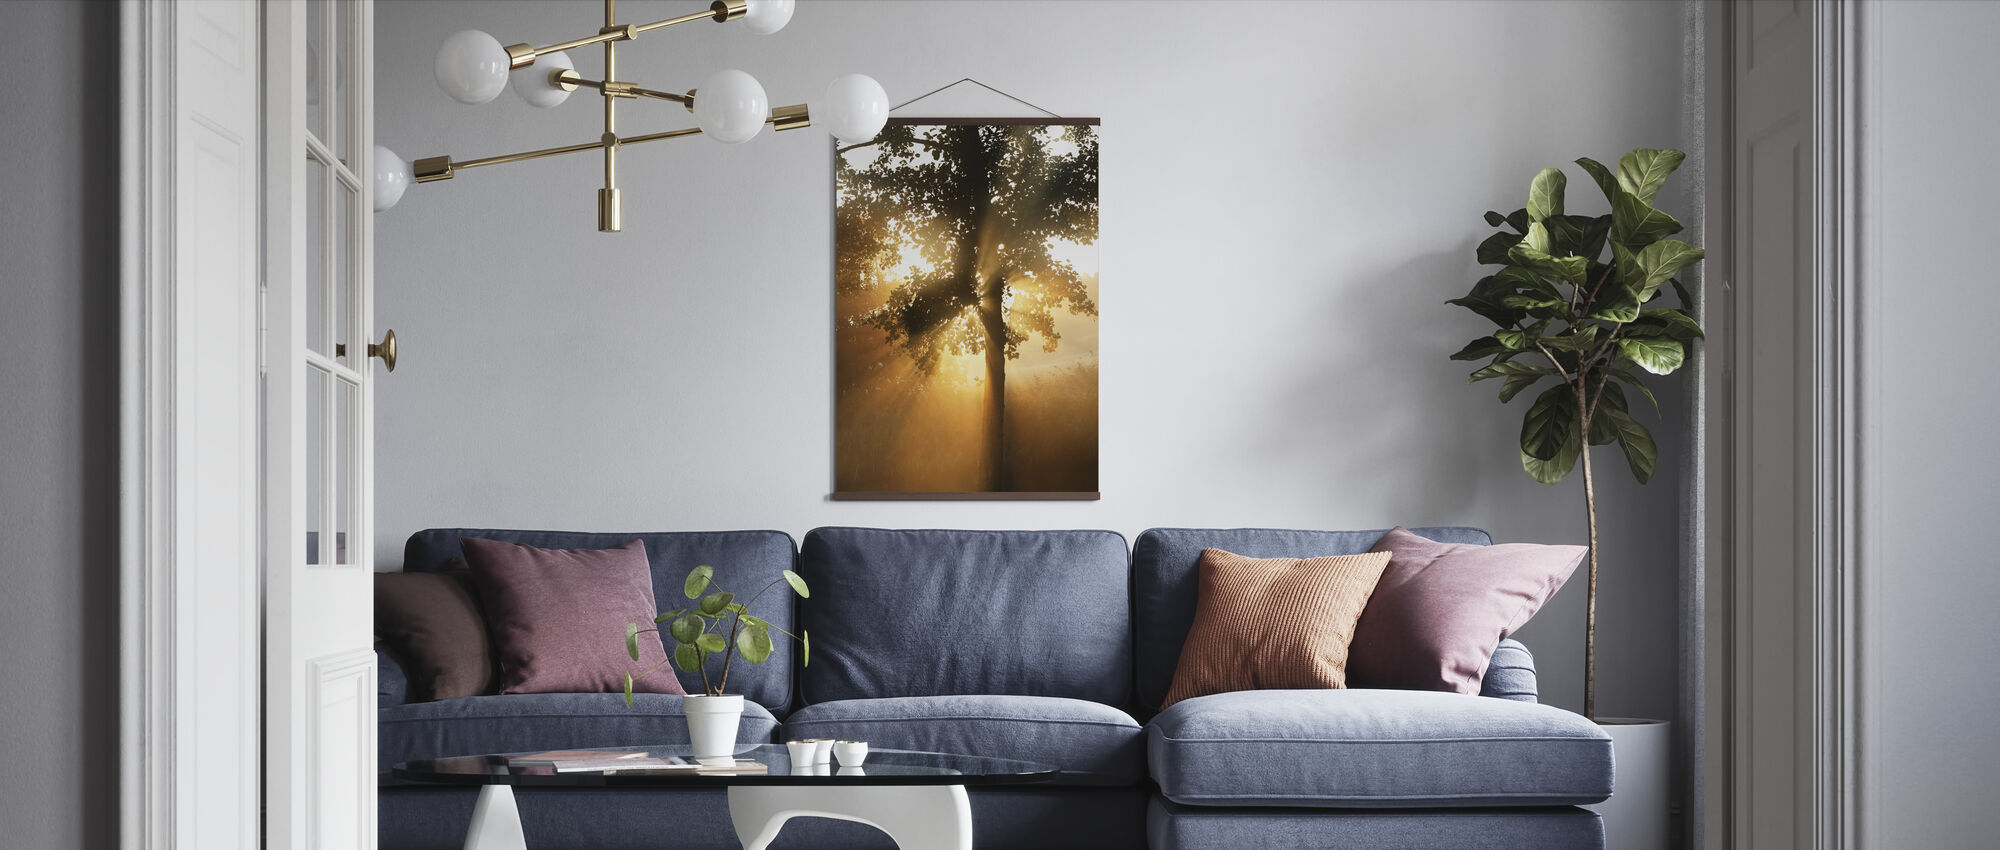 Morning Sunbeam through Leaves - Poster - Living Room